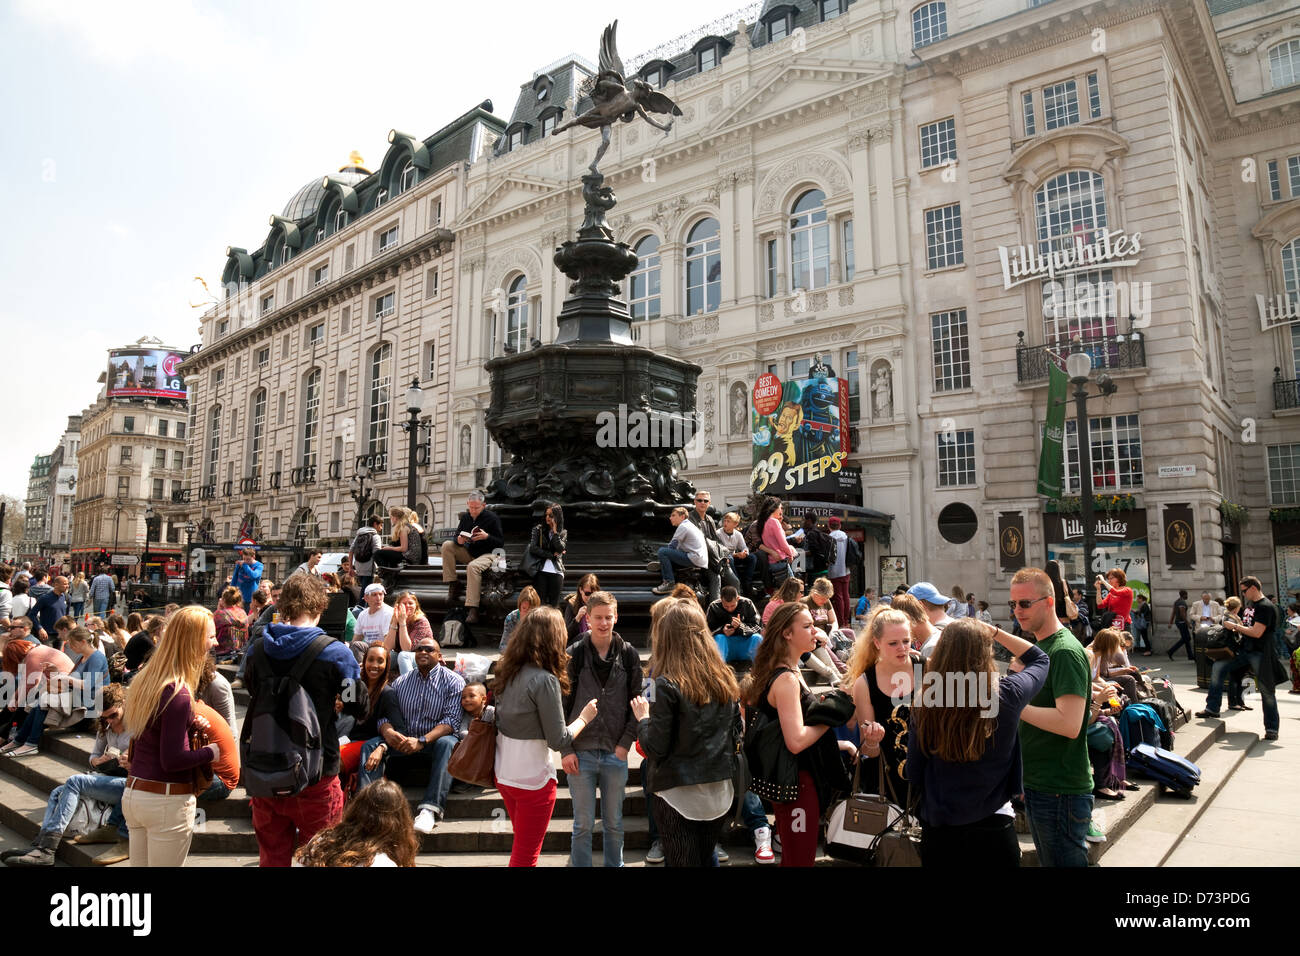 Crowd of tourists sitting round the statue of Eros, Piccadilly Circus, Central London W1, UK - Stock Image